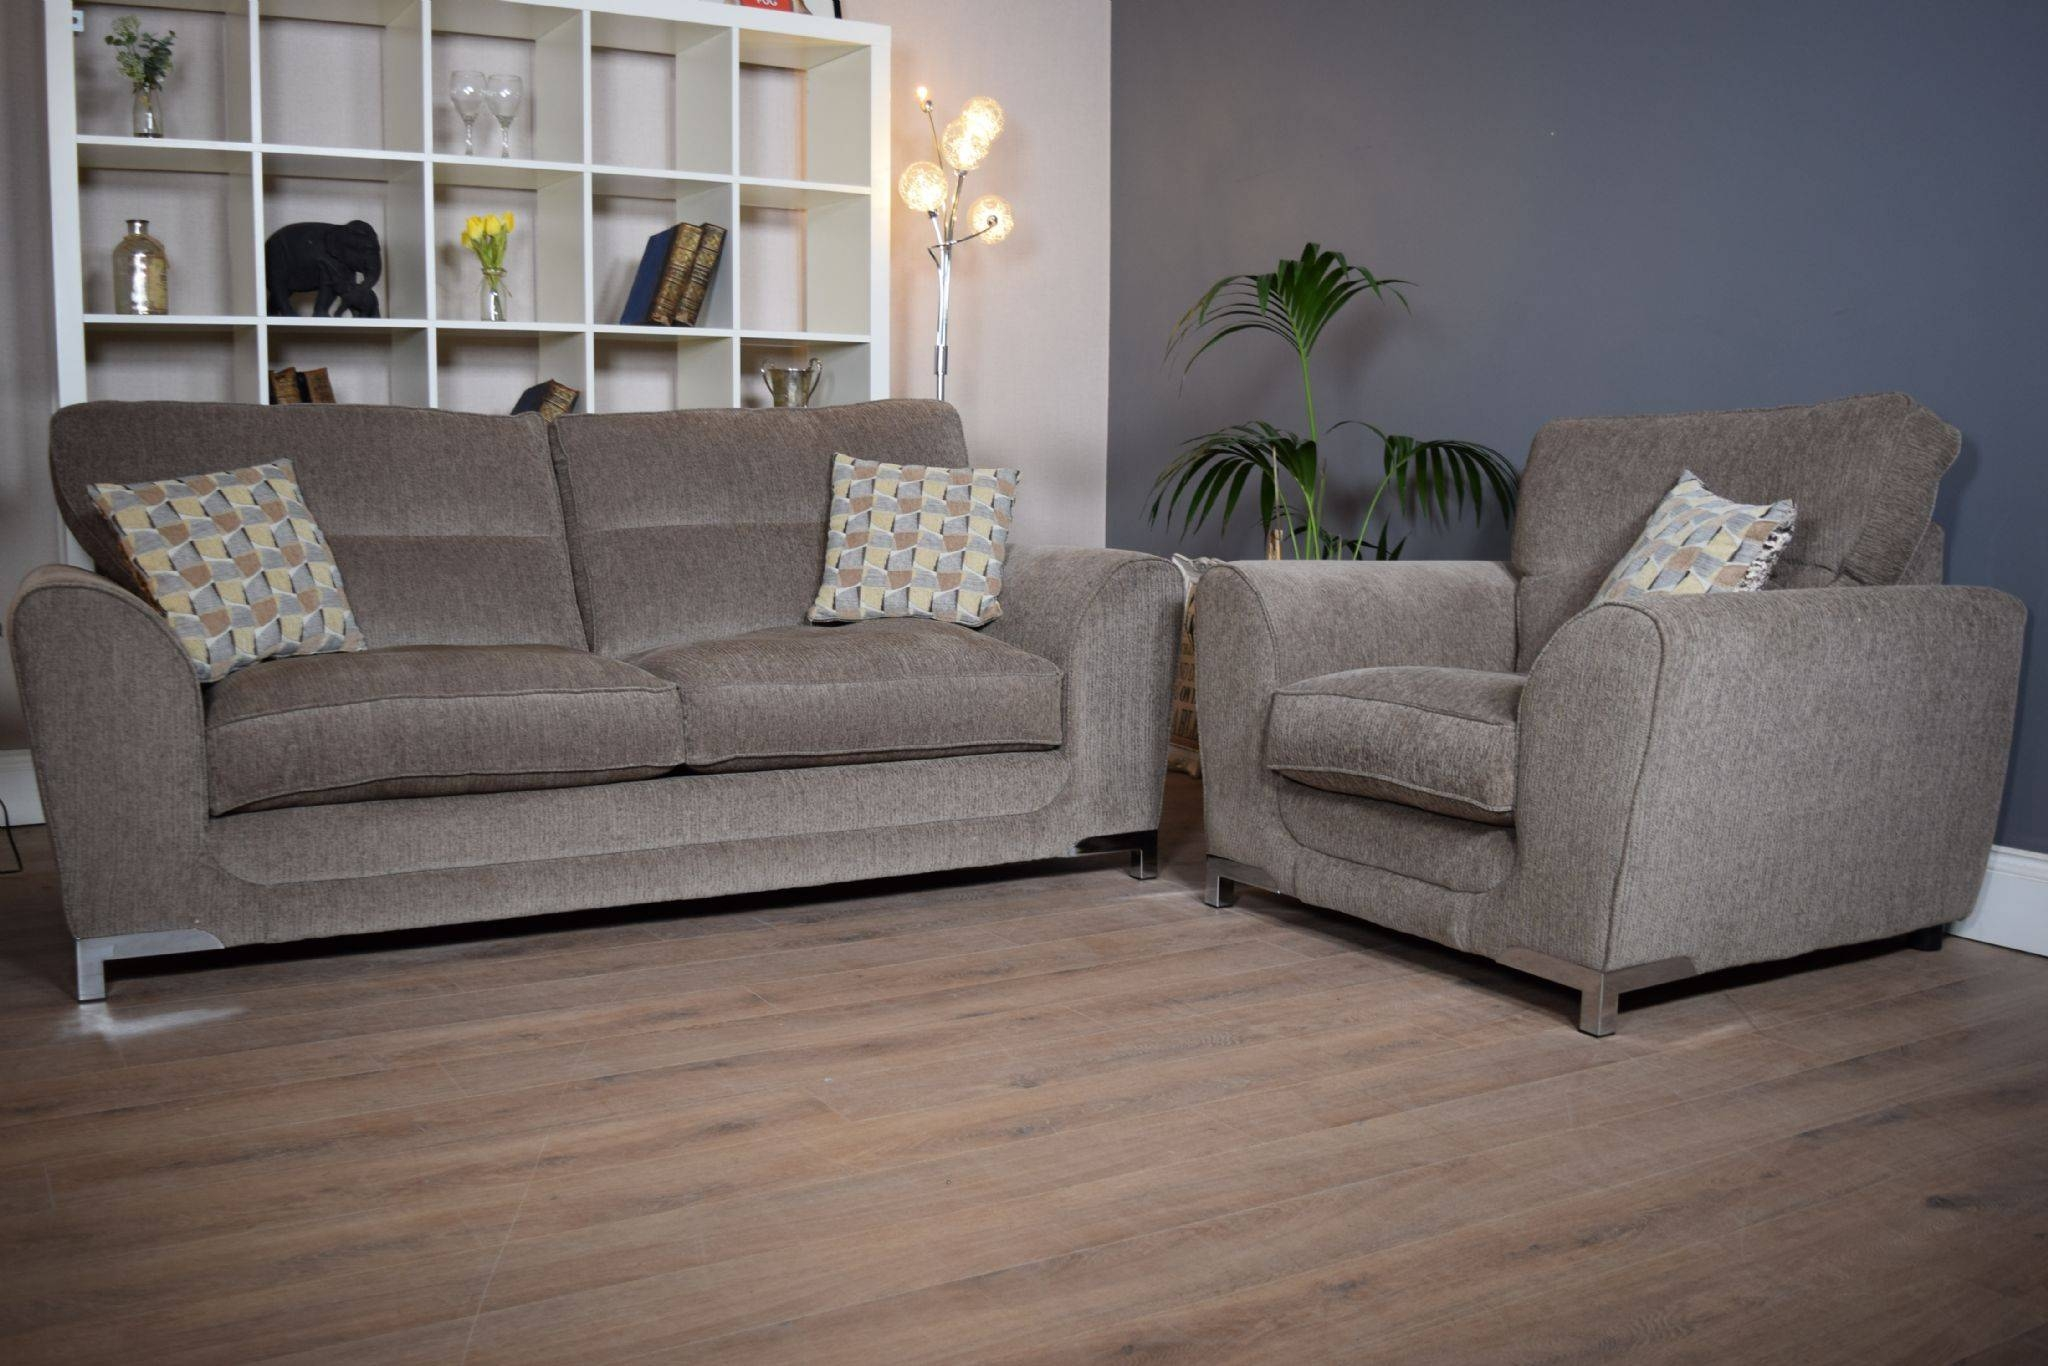 Set Nikki 3 Seater Sofa & Cuddle Chair Suite Set – Mocha Grey With Regard To 3 Seater Sofa And Cuddle Chairs (View 16 of 30)